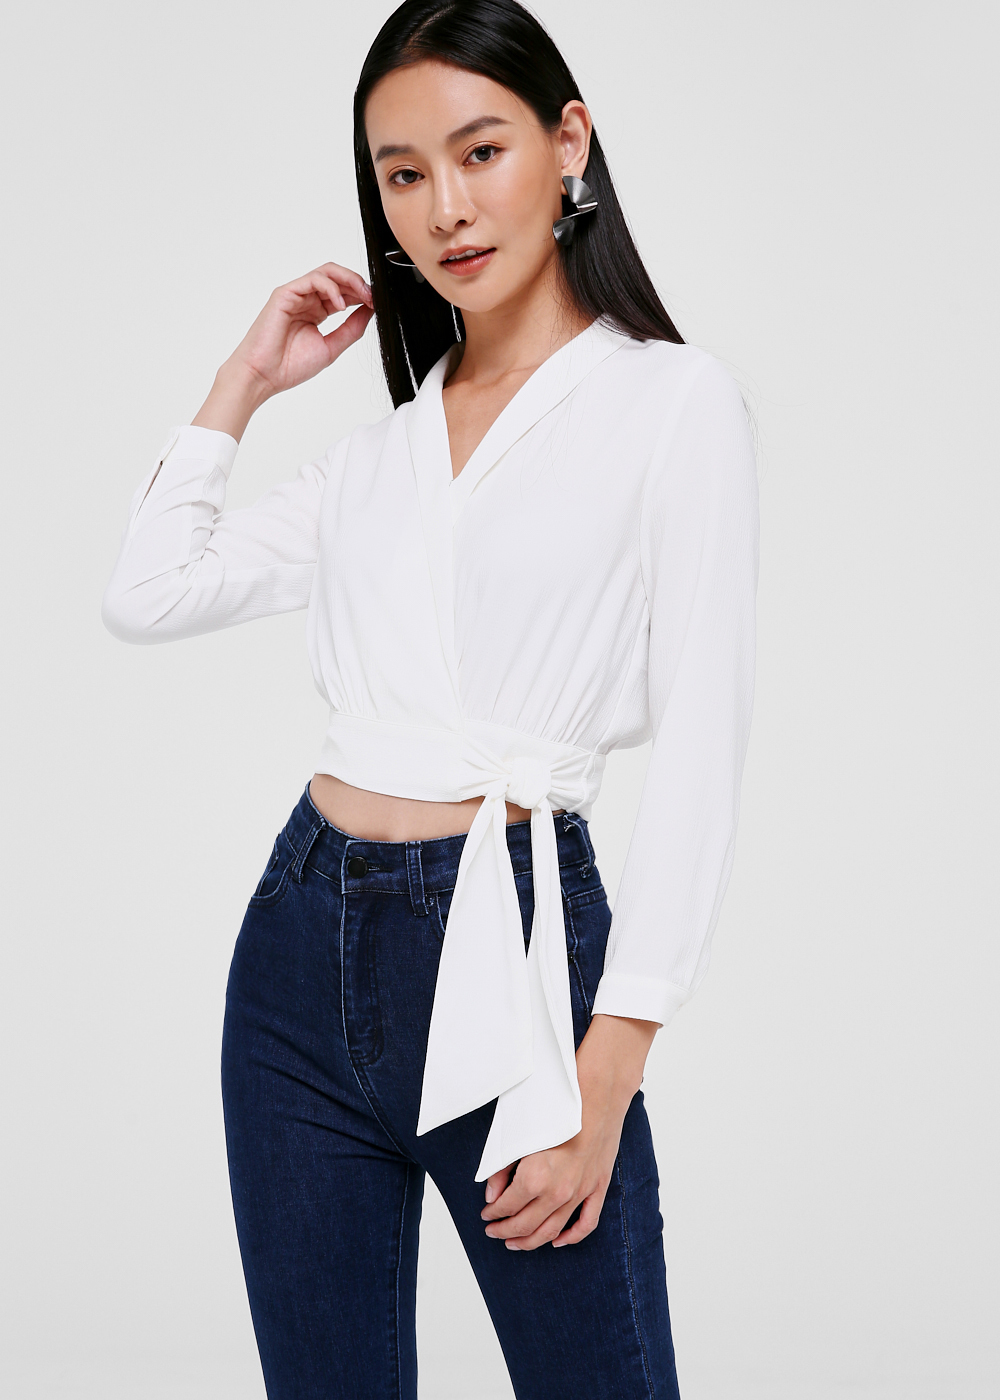 Quinta Cuffed Wrap Top